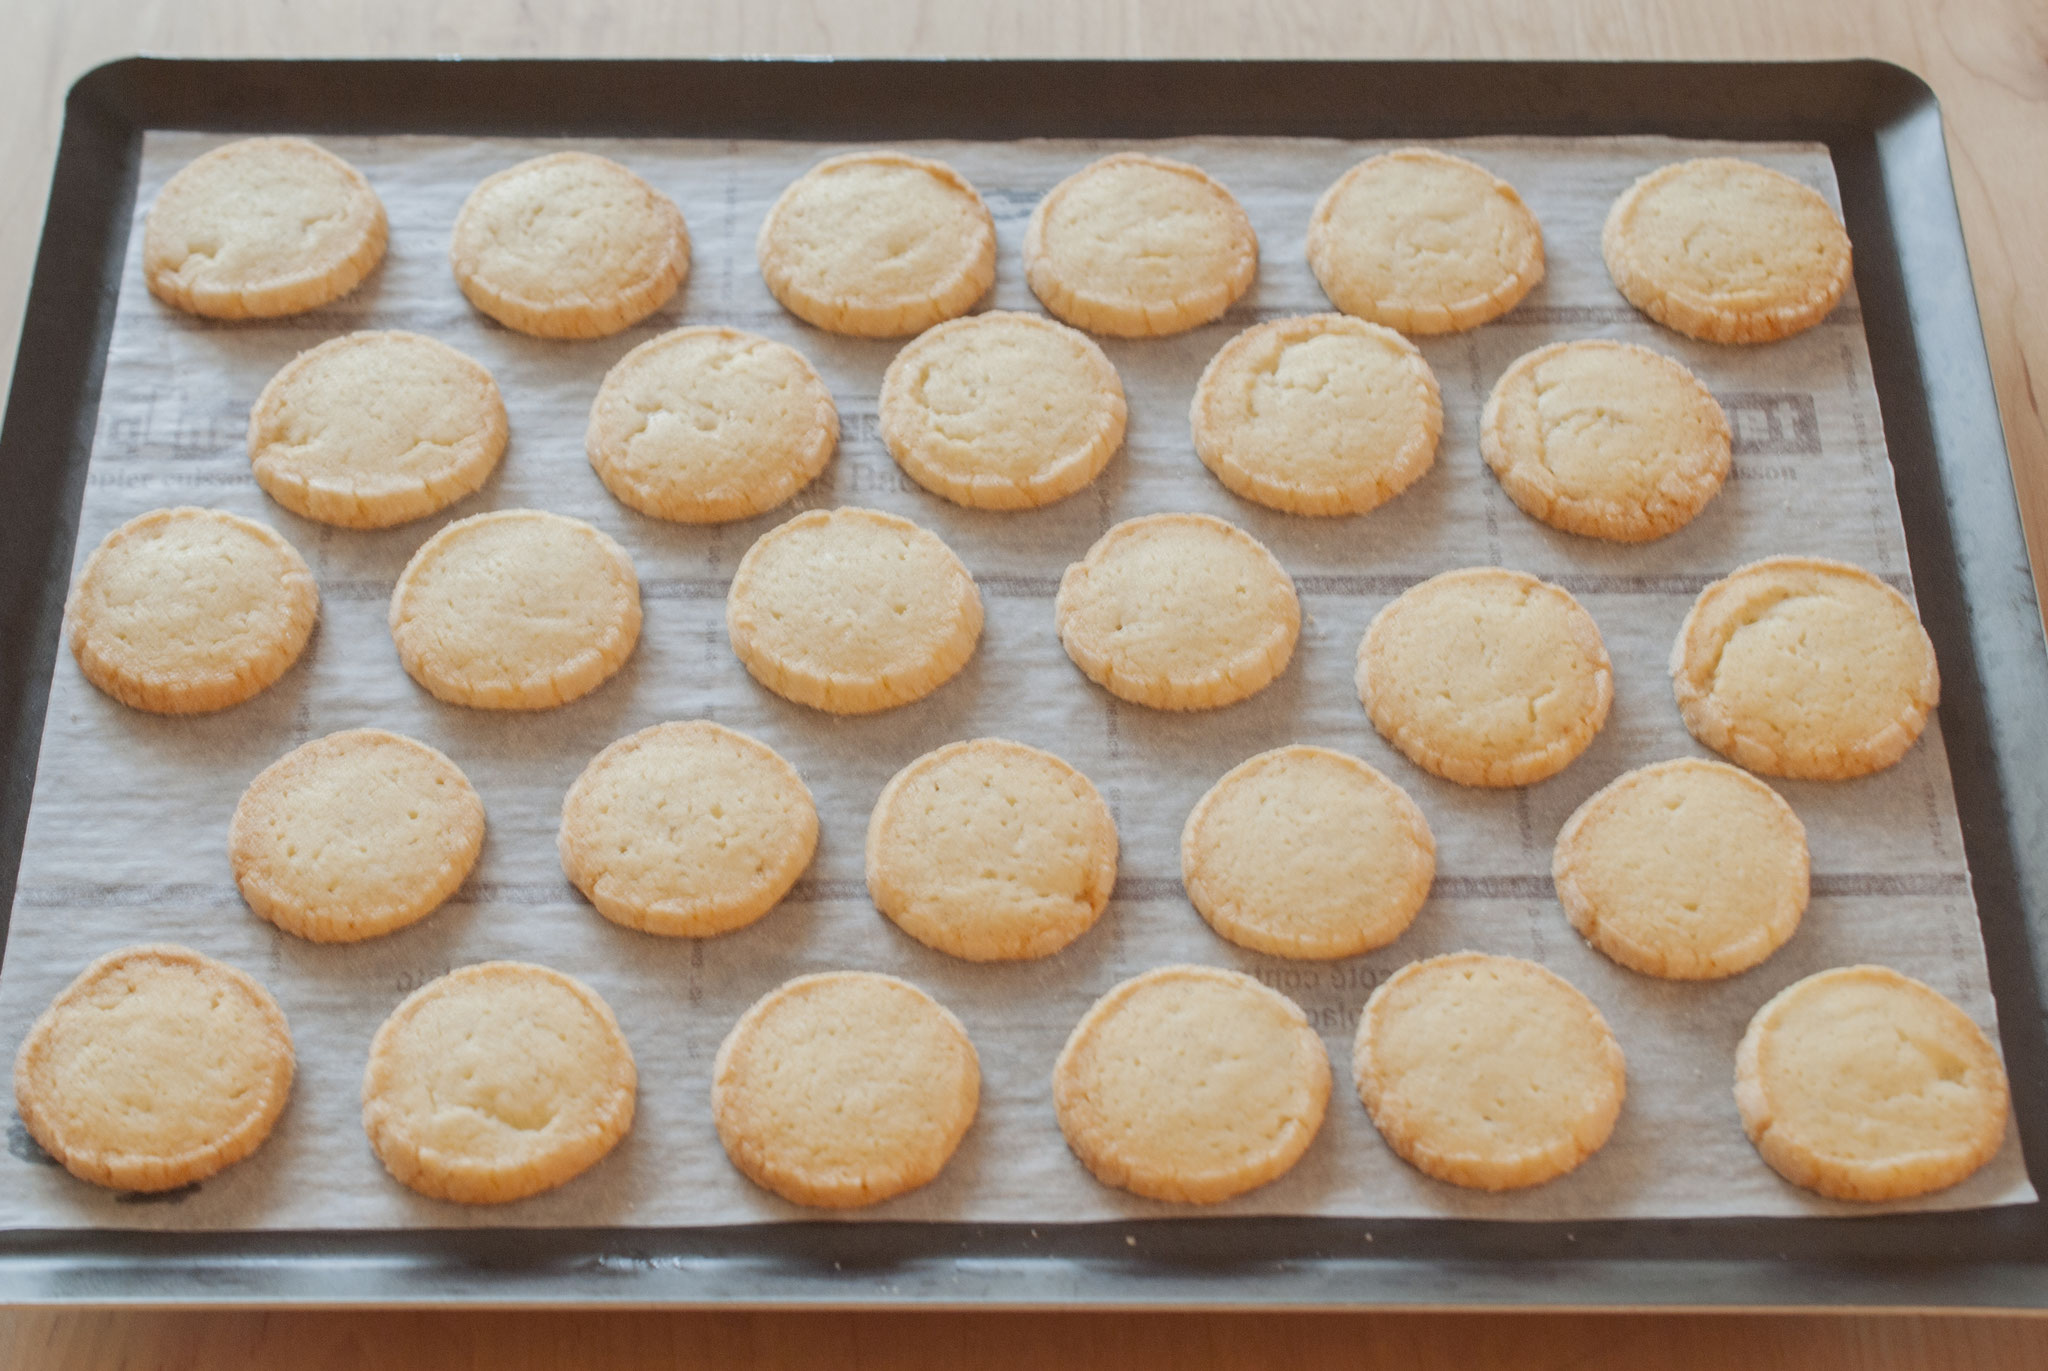 Vanilla Cookies with a recipe that values brittleness + special gift wrapping, Fleur*Fleur*